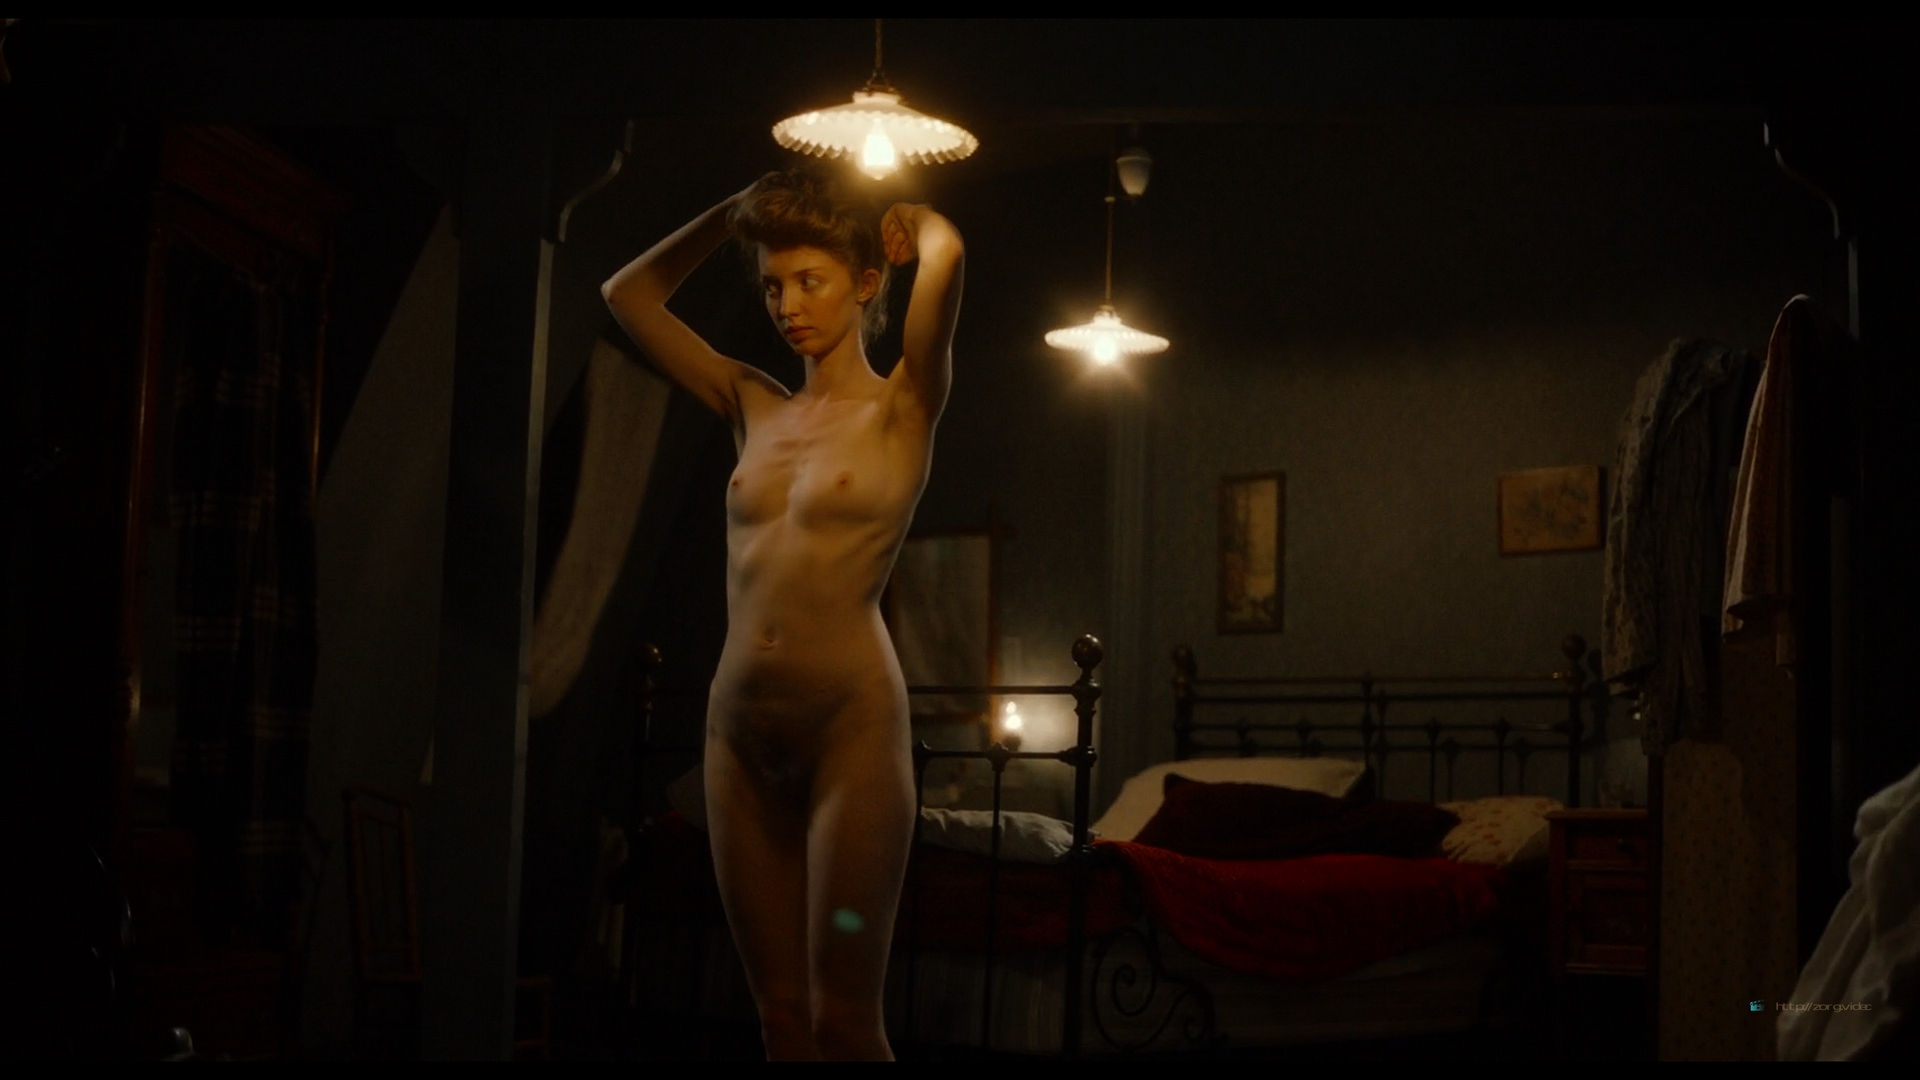 Noemie Merlant nude full frontal Camelia Jordana, Amira Casar and others nude - Curiosa (2019) HD 1080p Web (14)